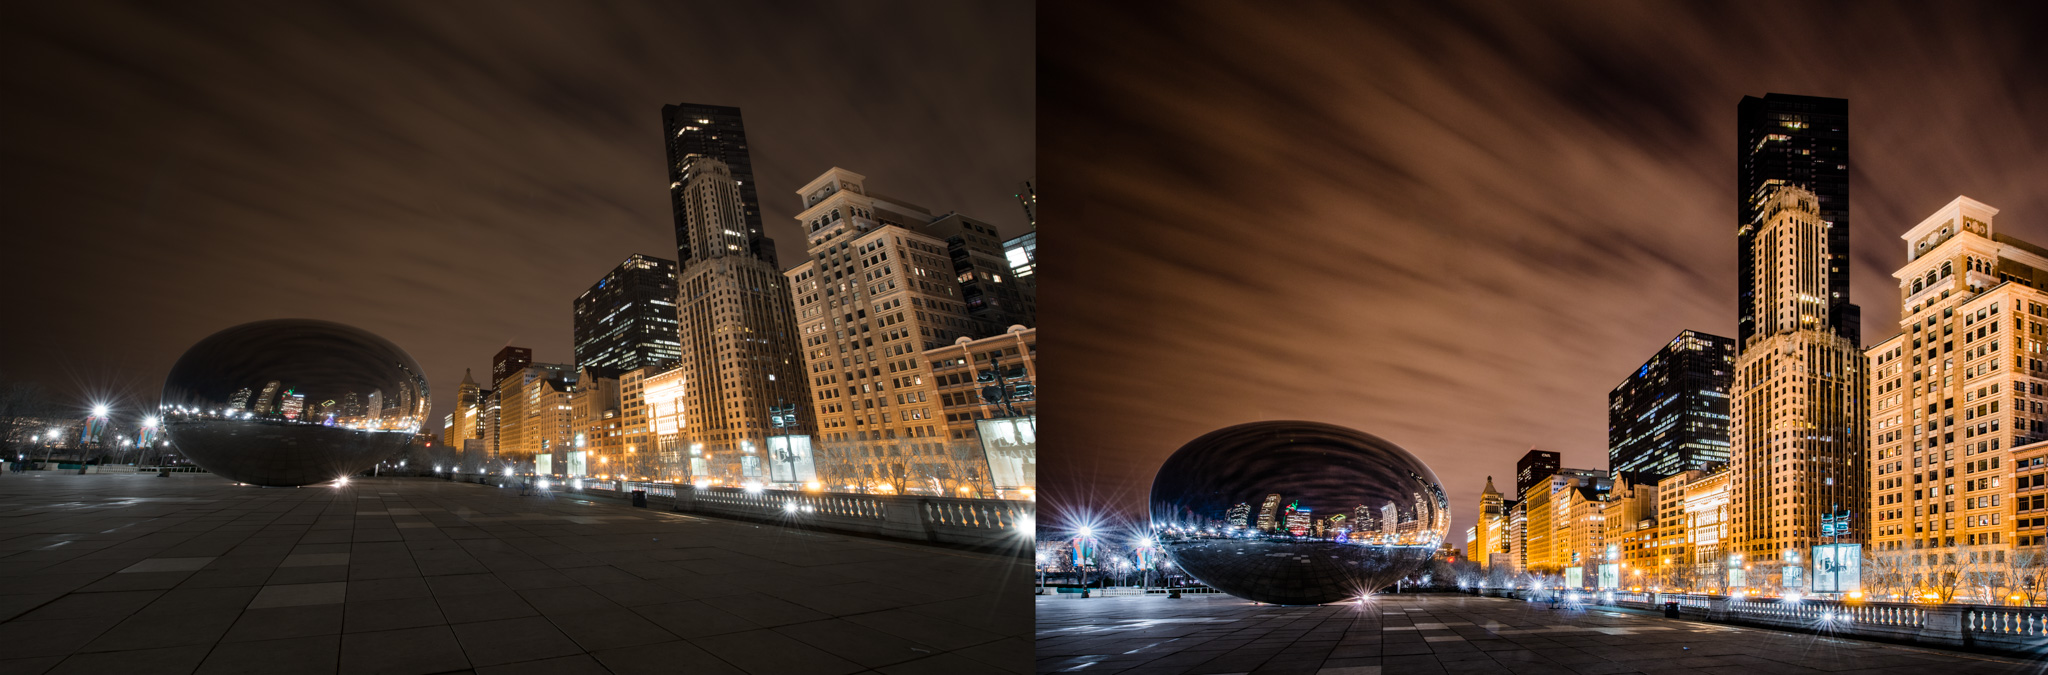 Shot with the Nikkor 14-24mm 2.8 at 15mm